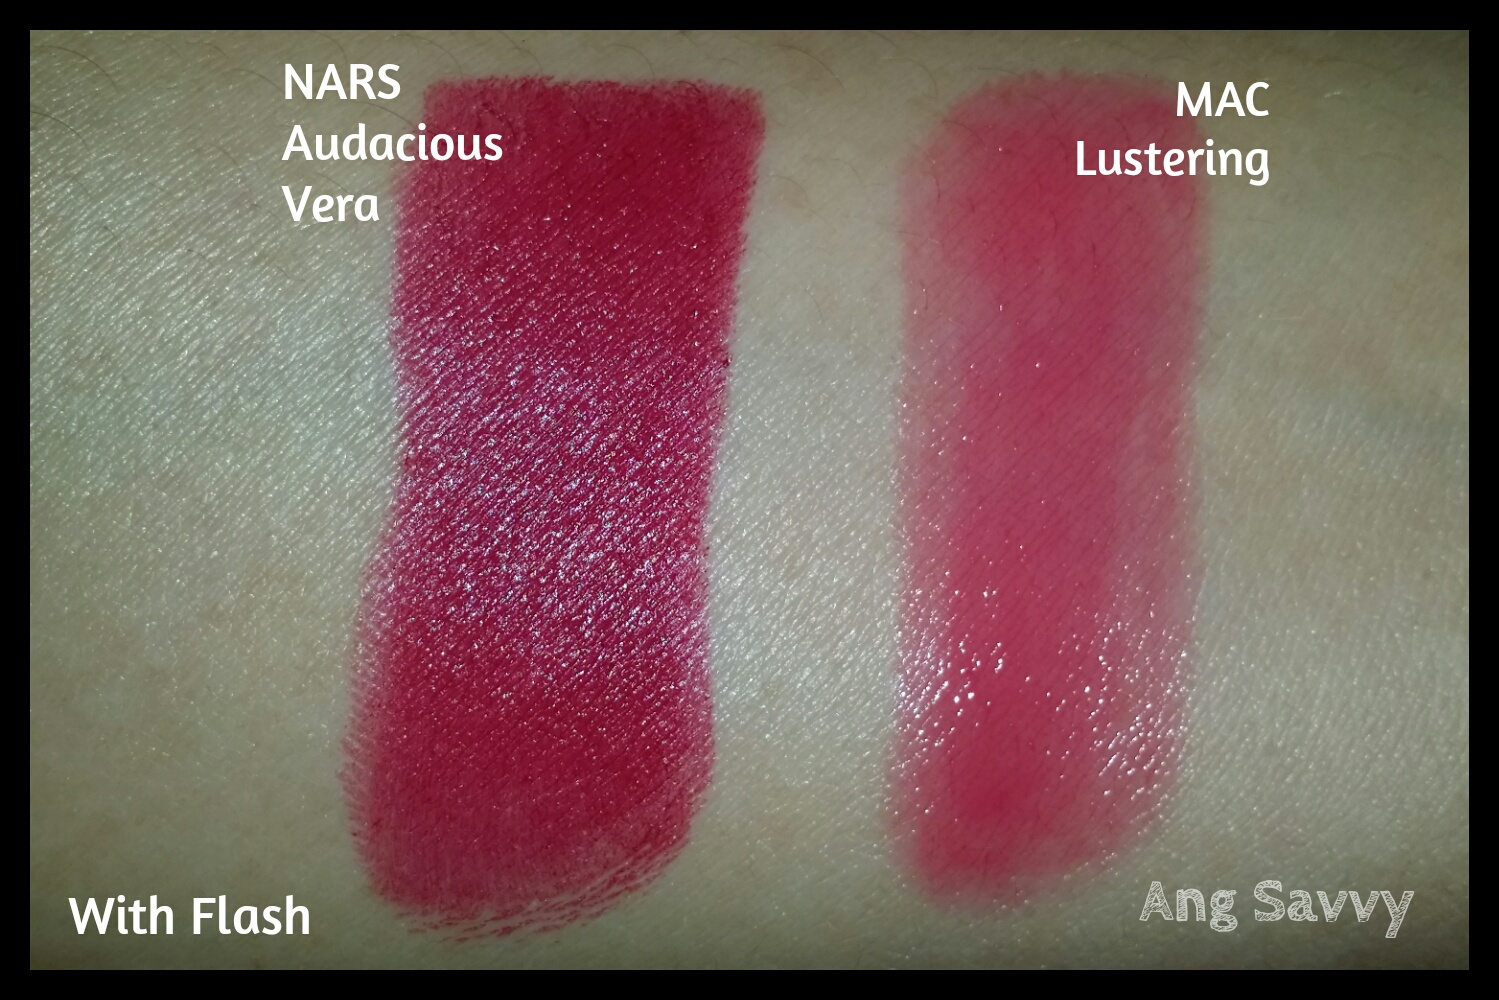 Swatches for NARS Audacious Lipstick in Vera